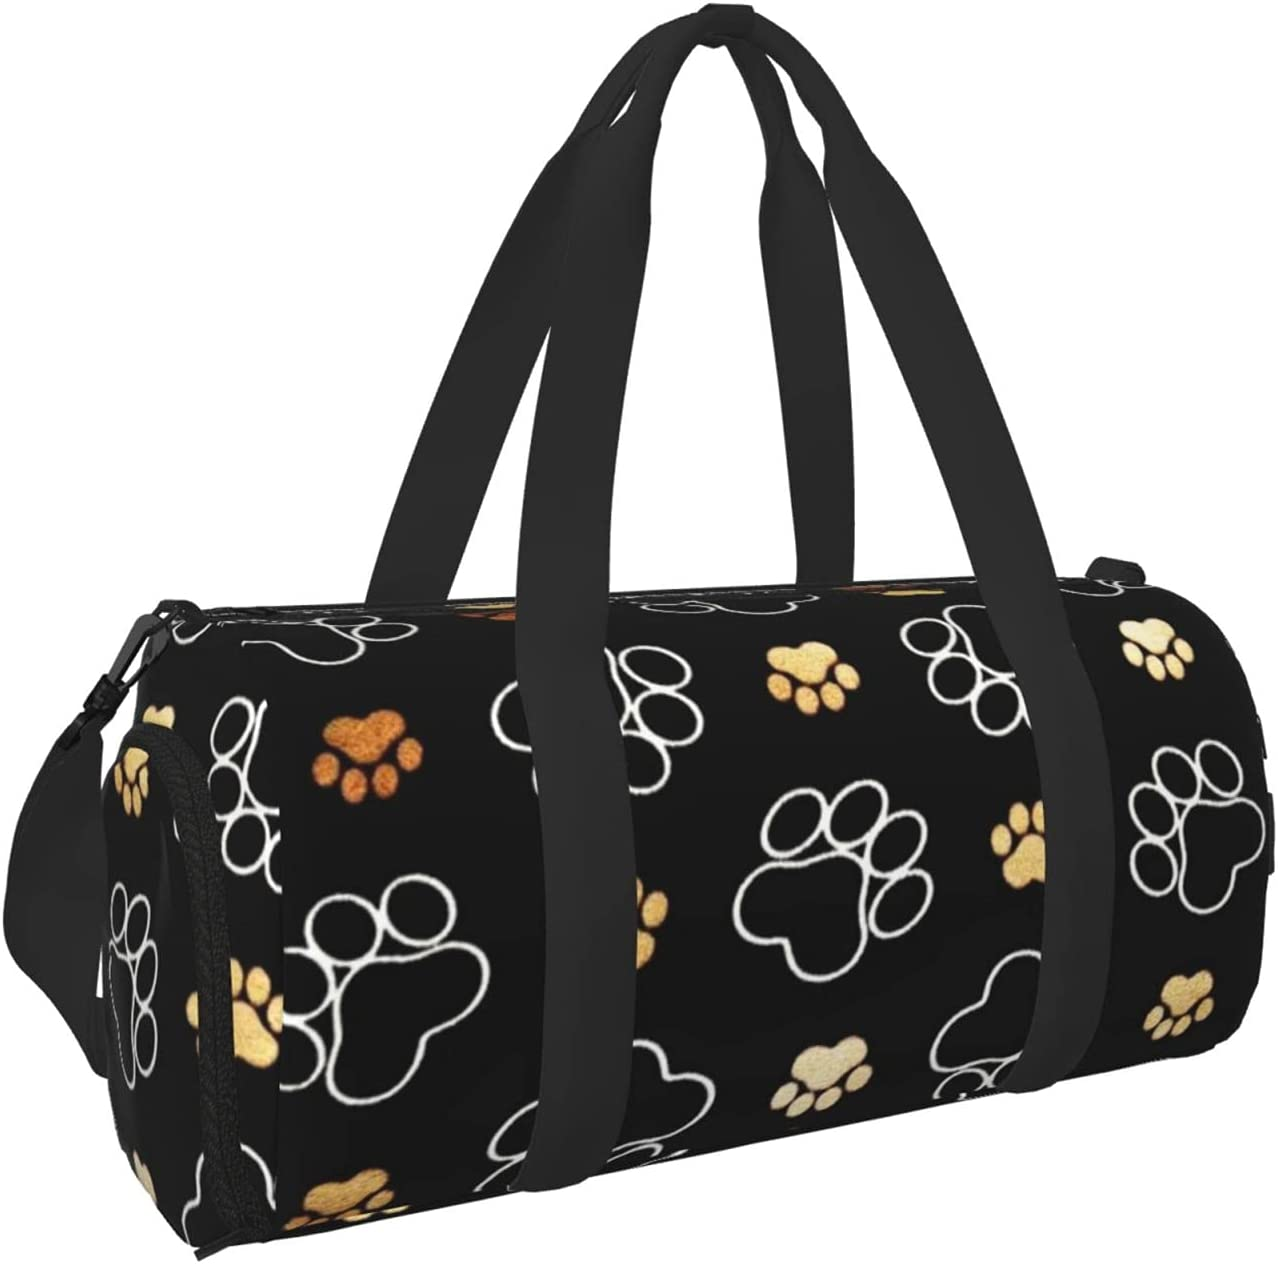 Portland Mall Denver Mall Dog Paw Prints Sports Gym Bag With Shoes Pocket Wet Compartmen